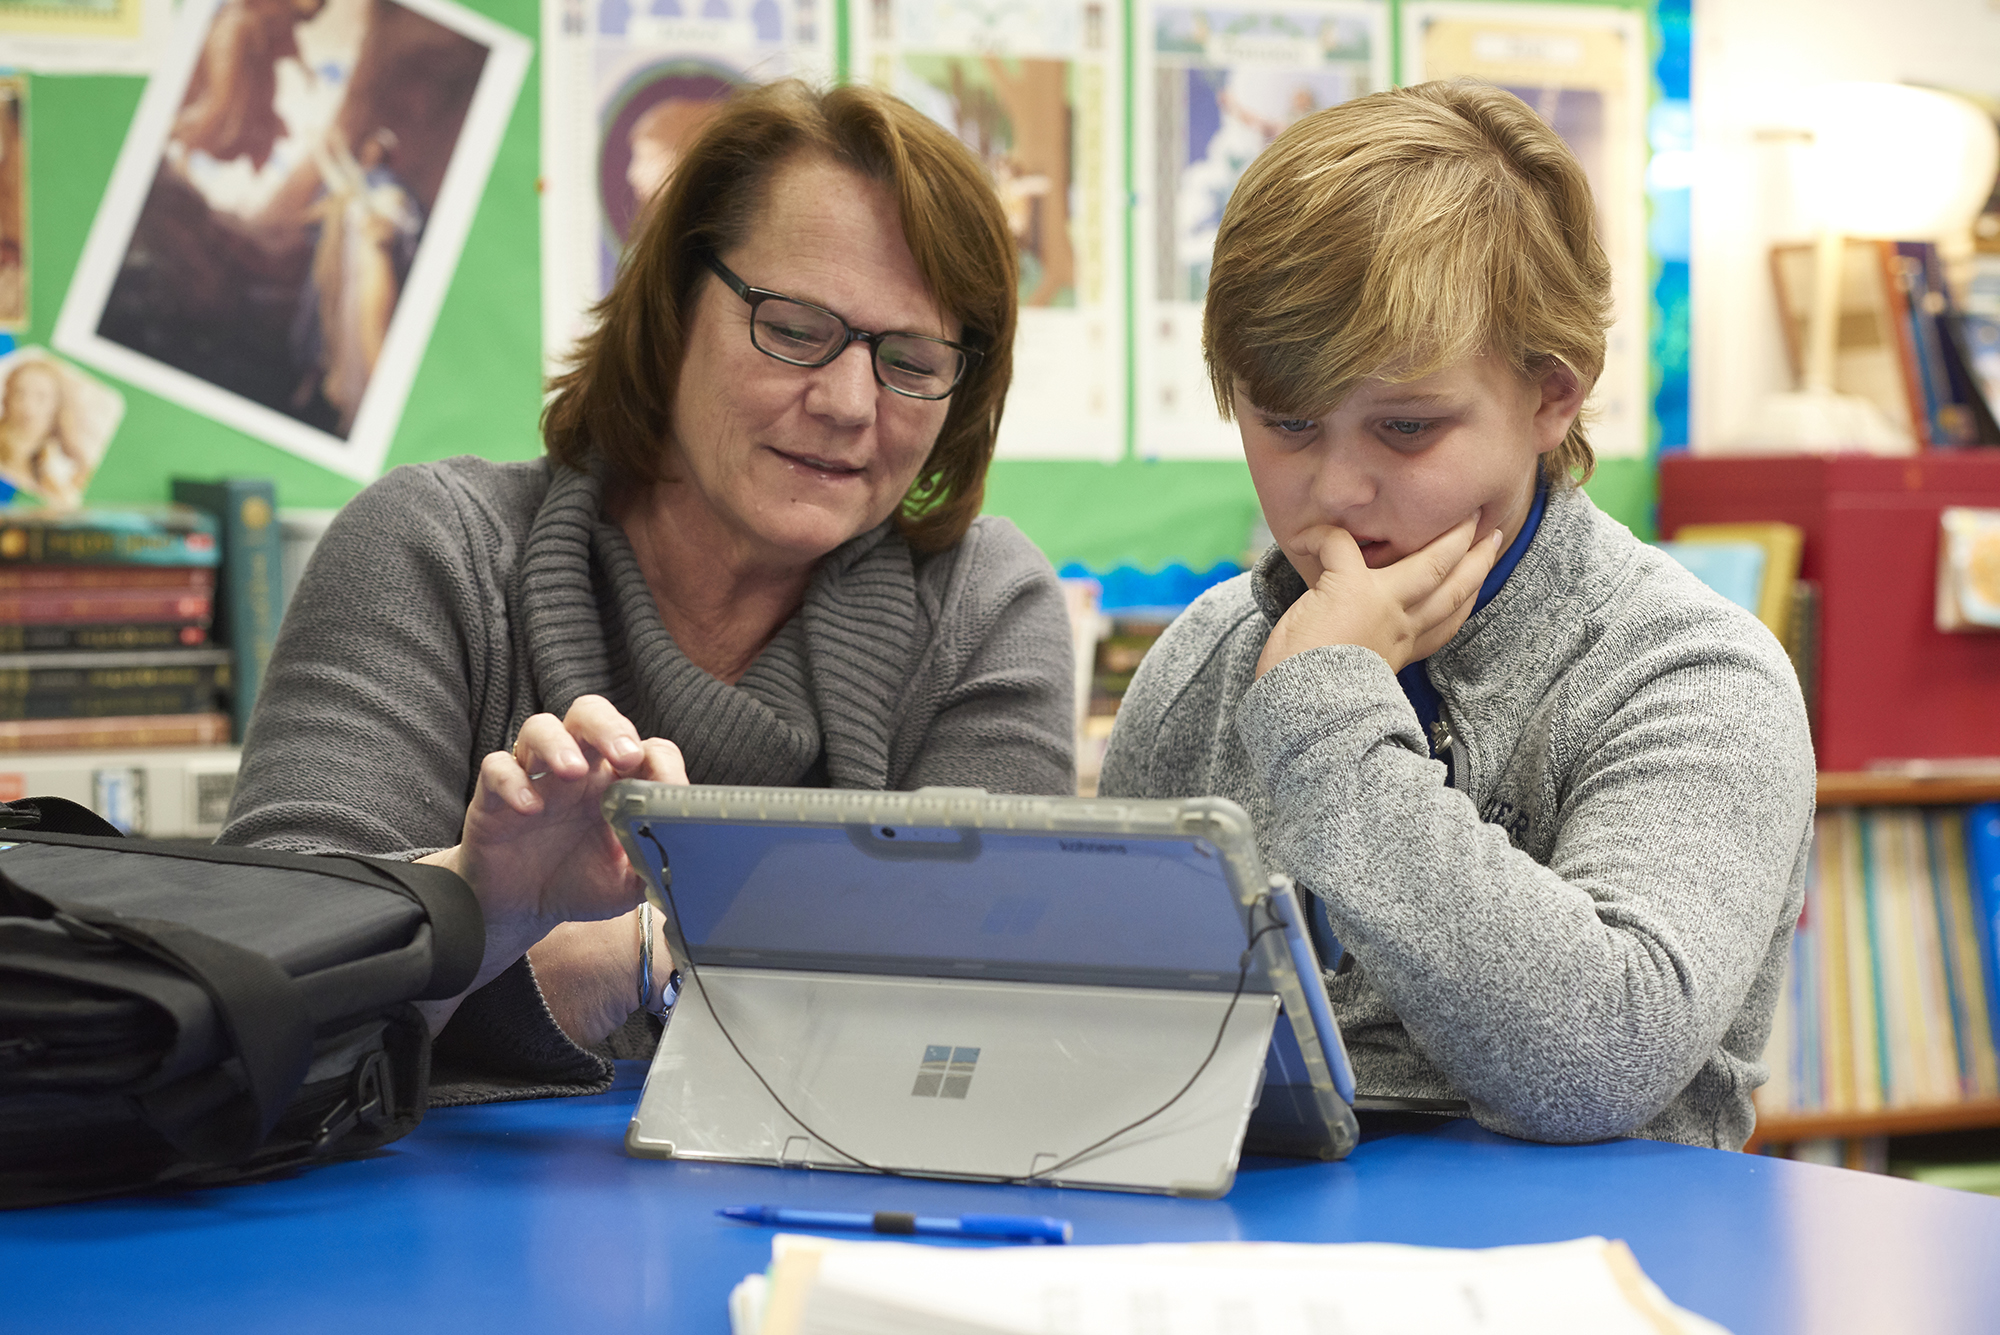 Teacher and student using tablet